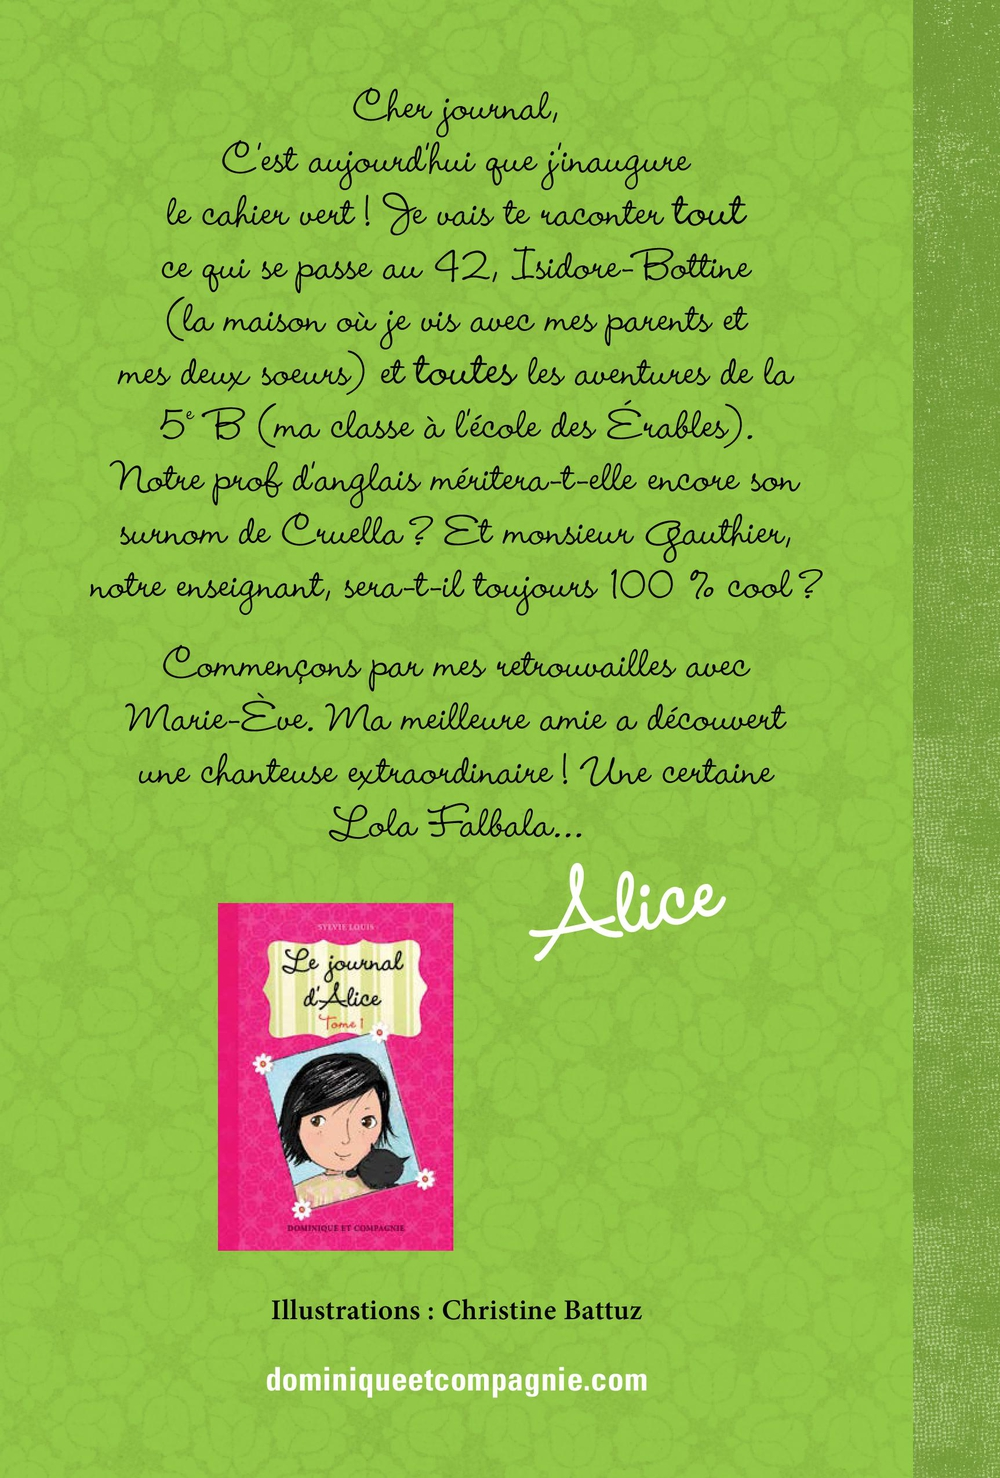 Le journal d'Alice T.2 : Lola Falballa - Sylvie Louis revers